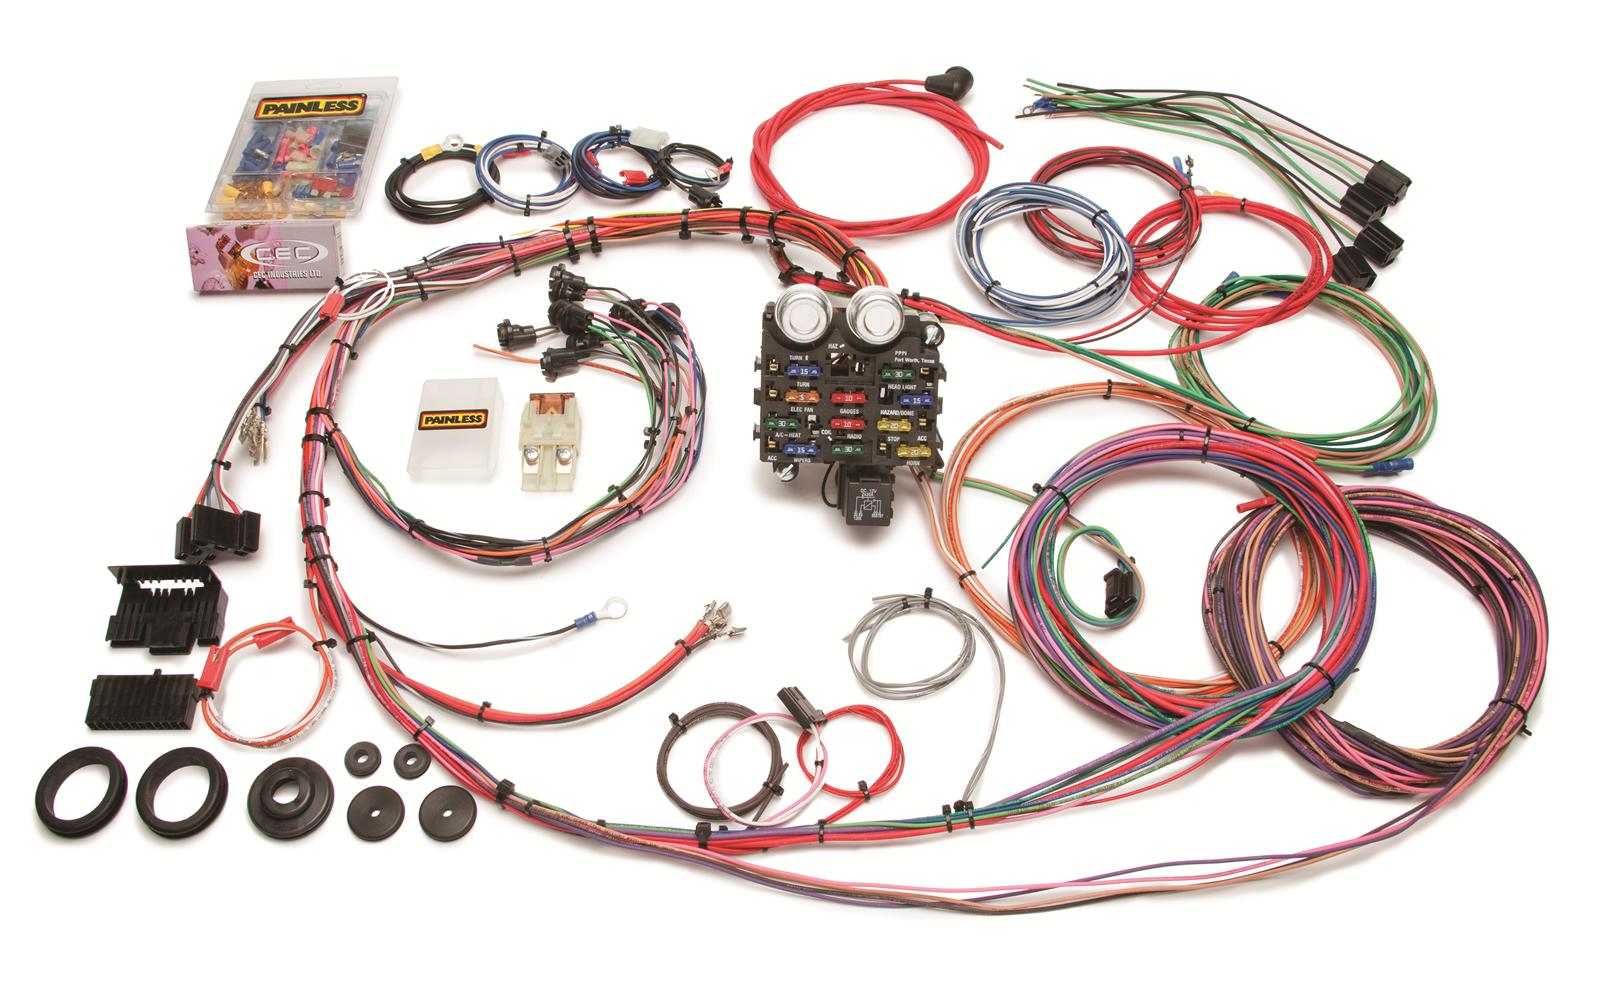 gm painless 1986 blazer wiring diagram 1986 chevrolet k5 blazer wiring diagram